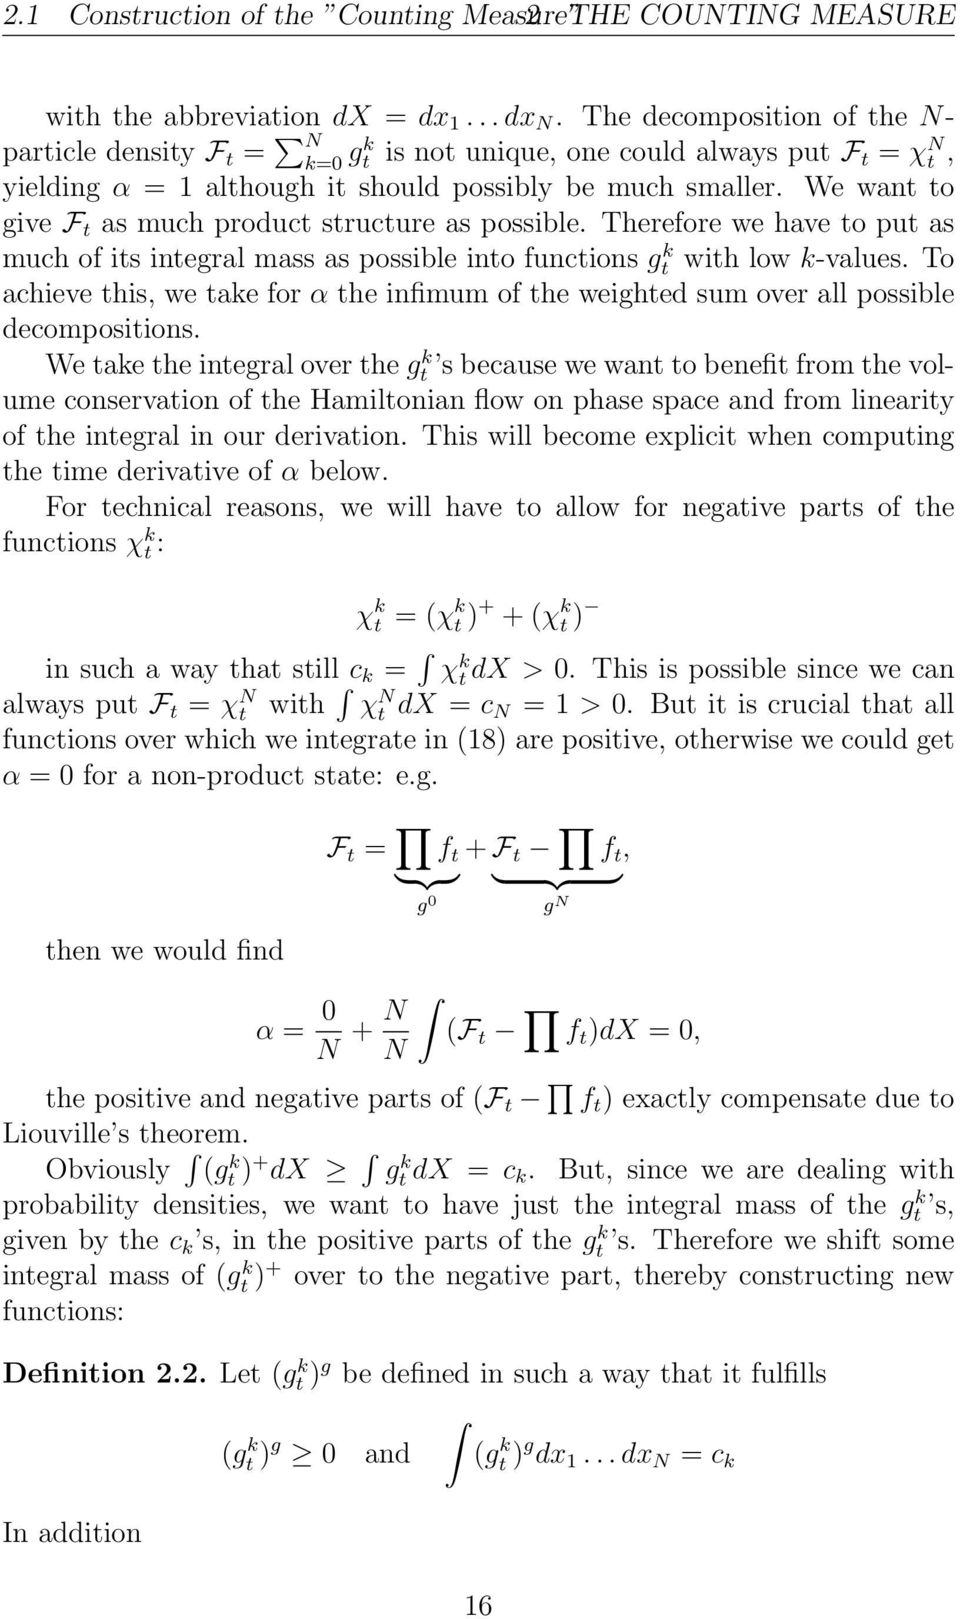 We want to give F t as much product structure as possible. Therefore we have to put as much of its integral mass as possible into functions gt k with low k-values.